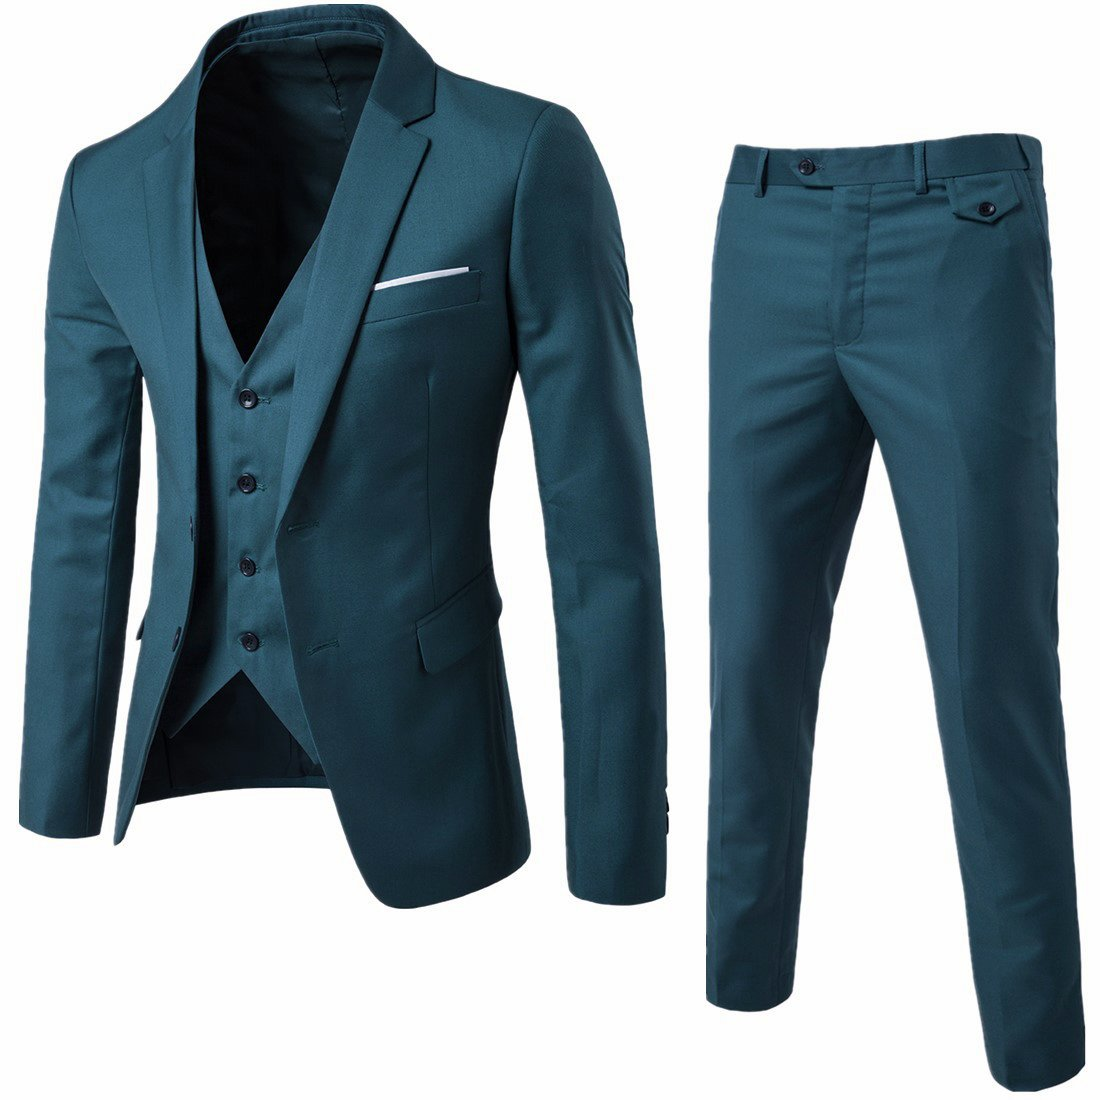 WULFUL Men's Suit Slim Fit 3 Piece Suit Blazer Two Button Tuxedo Business Wedding Party Jackets Vest&Trousers by WULFUL